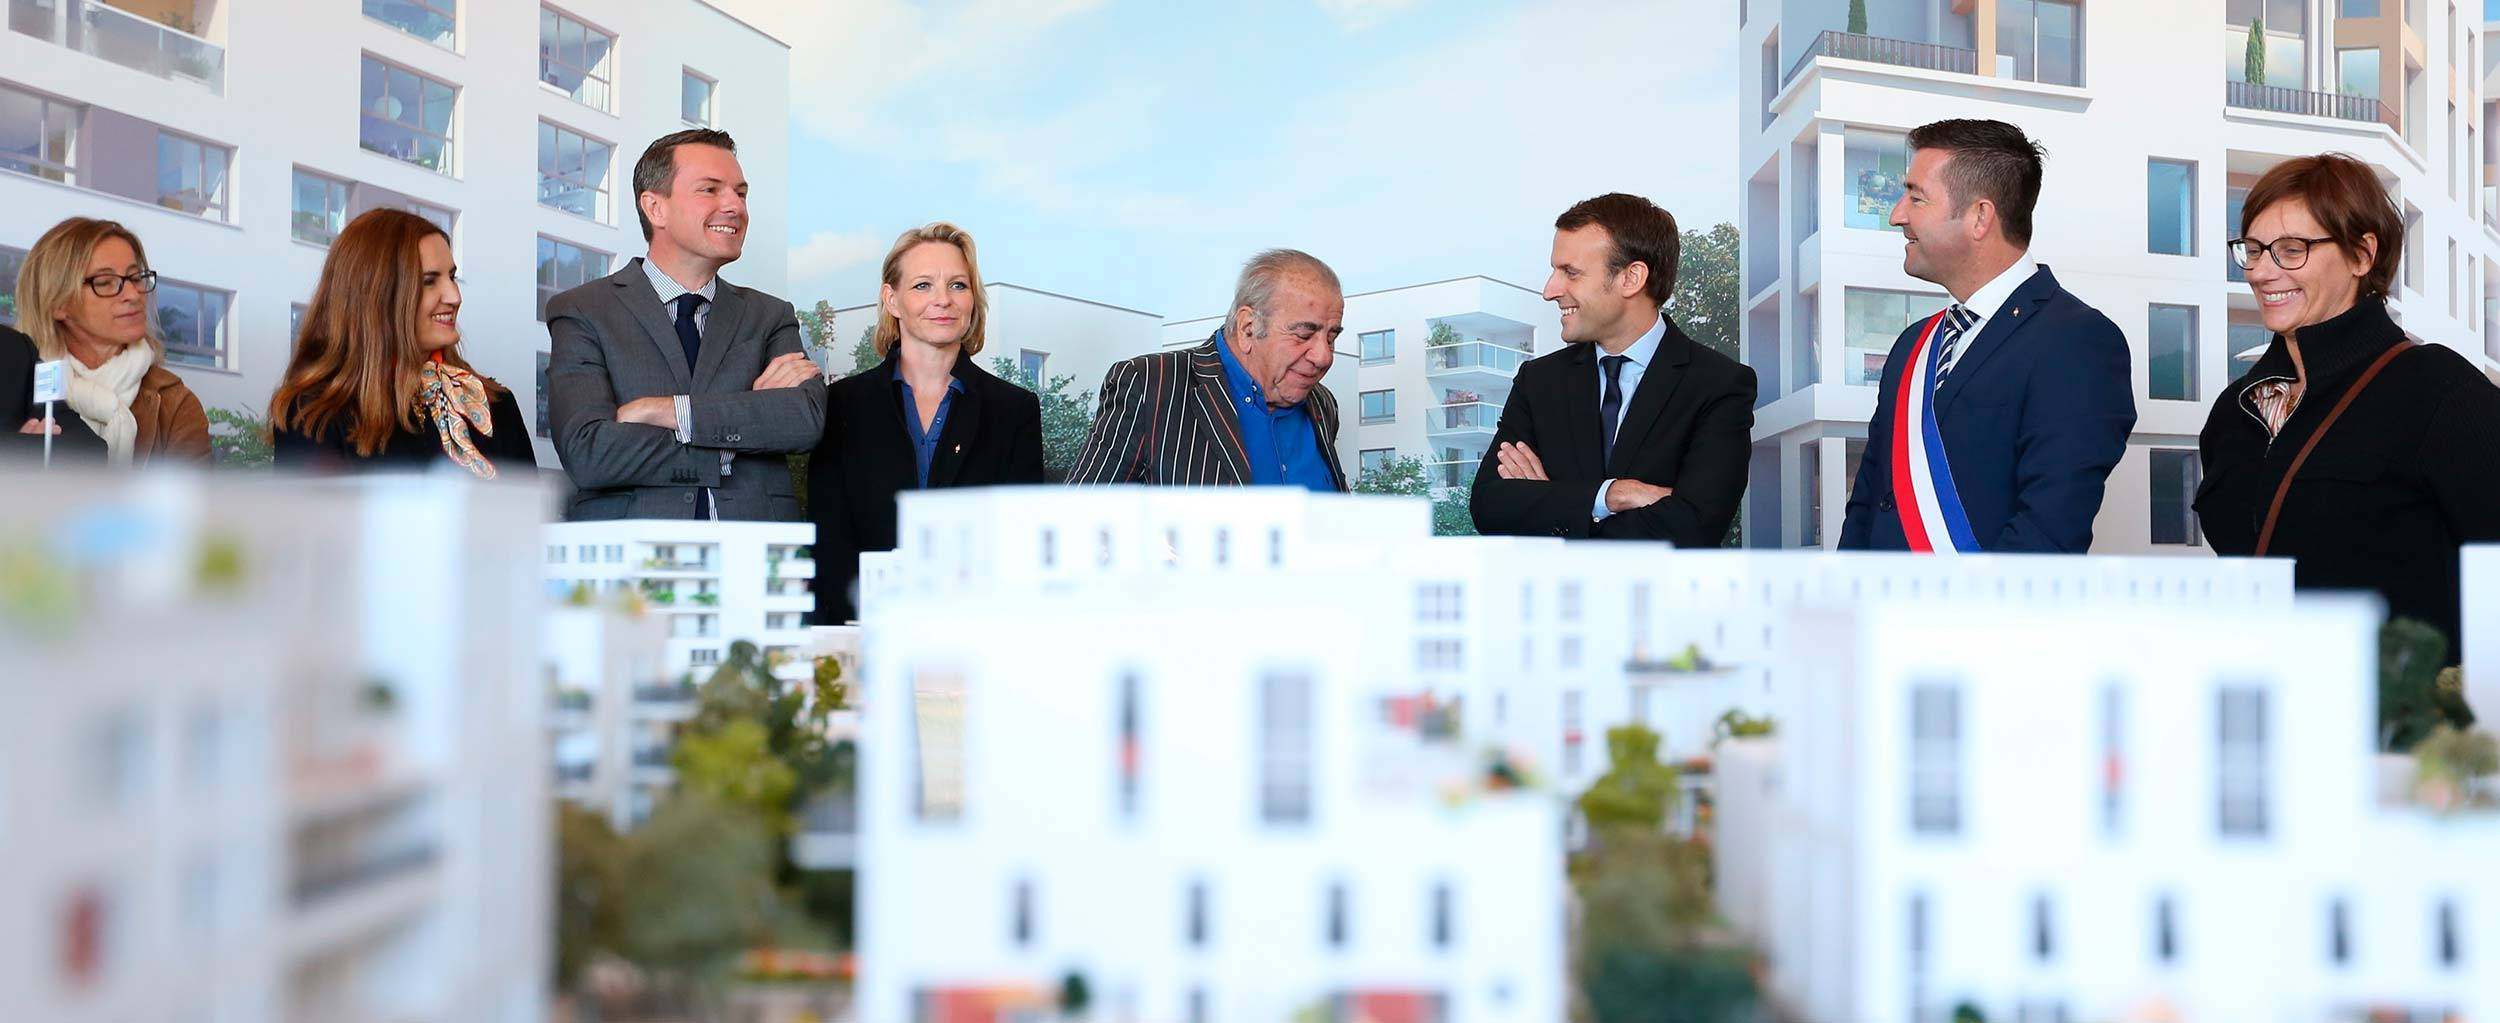 23-logement-construction-emmanuel-macron